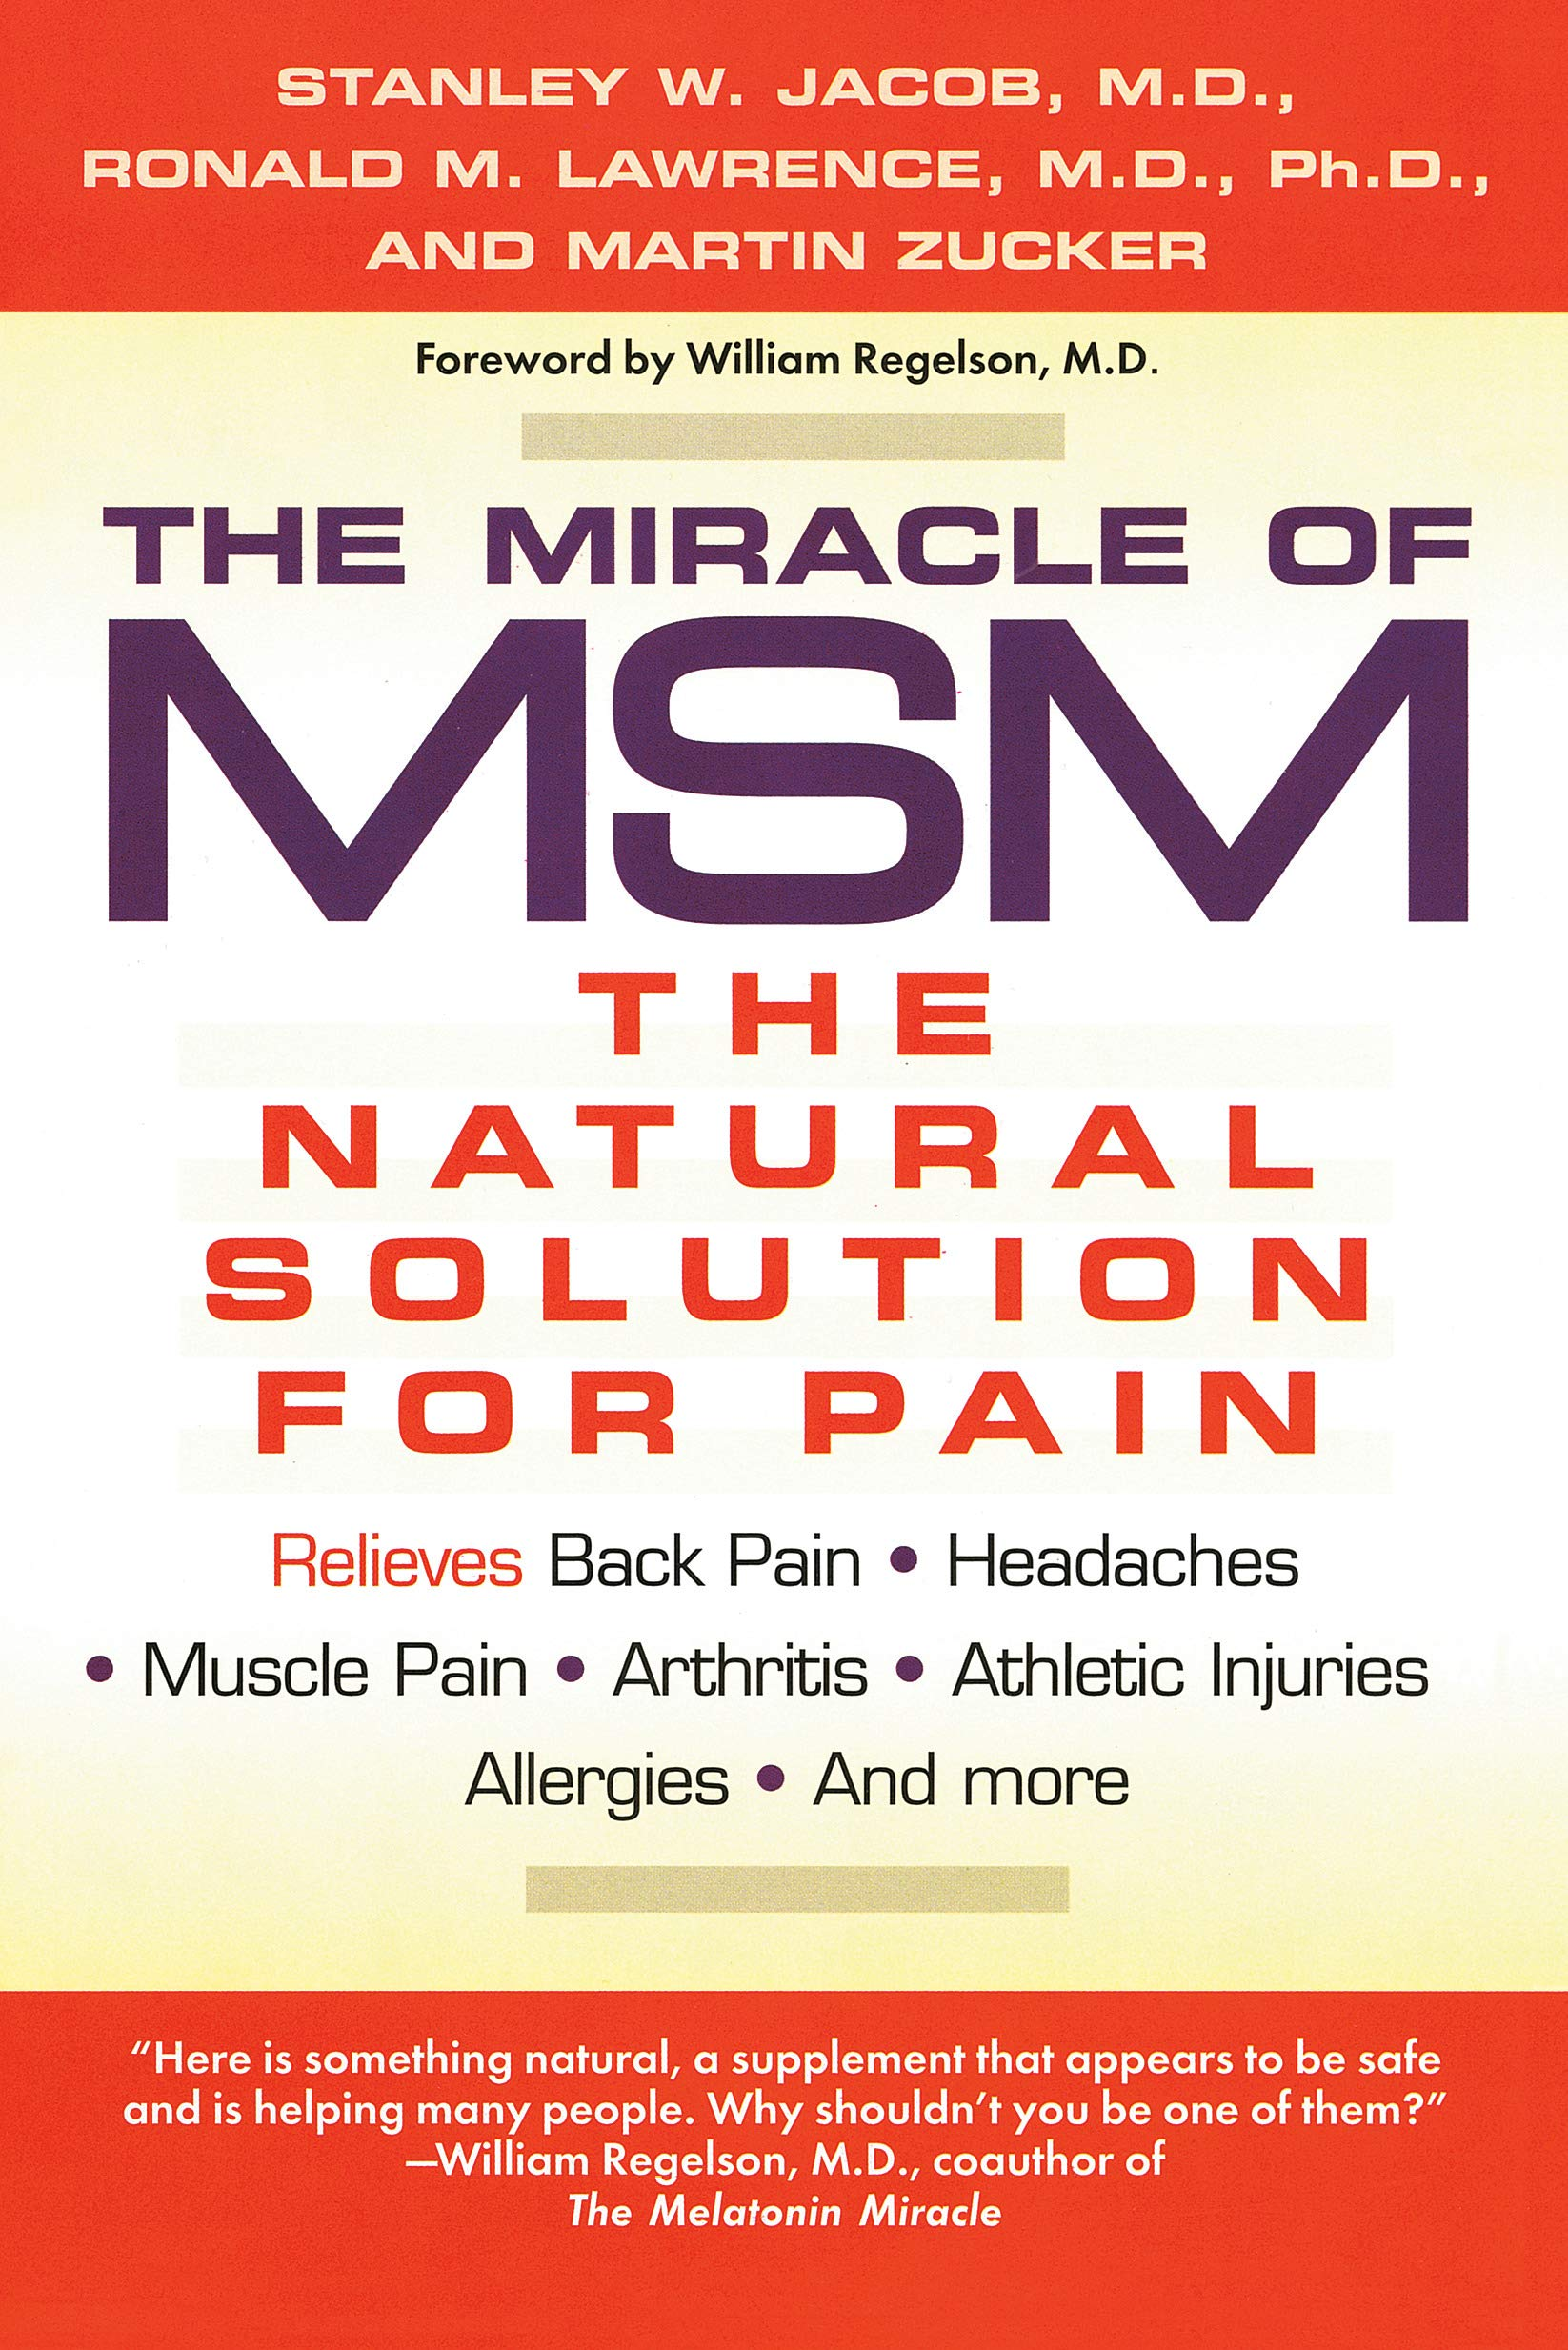 "the miracle of mSM - by Dr. Stanely Jacob, M.D.The definitive book on the amazing pain reliever MSM–by the pioneer doctor who discovered its effects and benefits. MSM, or methylsulfonylmethane, is the first safe, natural, side-effect-free remedy for many types of pain and inflammatory conditions. In this authoritative look at MSM, Drs. Stanley Jacob and Ronald Lawrence reveal how to tap into the benefits of this amazing ""miracle"" compound. Experienced in the successful treatment of thousands of patients for pain, they explain how to take MSM–how much, when, with what foods, and in what form–to relieve pain in its many varieties, including:Degenerative arthritis – Chronic back pain – Chronic headache – Muscle pain – Fibromyalgia – Tendinitis and bursitis – Carpal tunnel syndrome – TMJ – Post-traumatic pain and inflammation – Allergies – and moreAbout the AuthorsStanley W. Jacob, M.D., is director of the DMSO Clinic and professor of surgery at Oregon Health Sciences University in Portland. Neurologist Ronald M. Lawrence, M.D., Ph.D., is a founding member of the International Association for the Study of Pain and the American Association for the Study of Headaches. Health writer Martin Zucker has written extensively on natural healing, nutrition, fitness, and alternative medicine for more than twenty years."